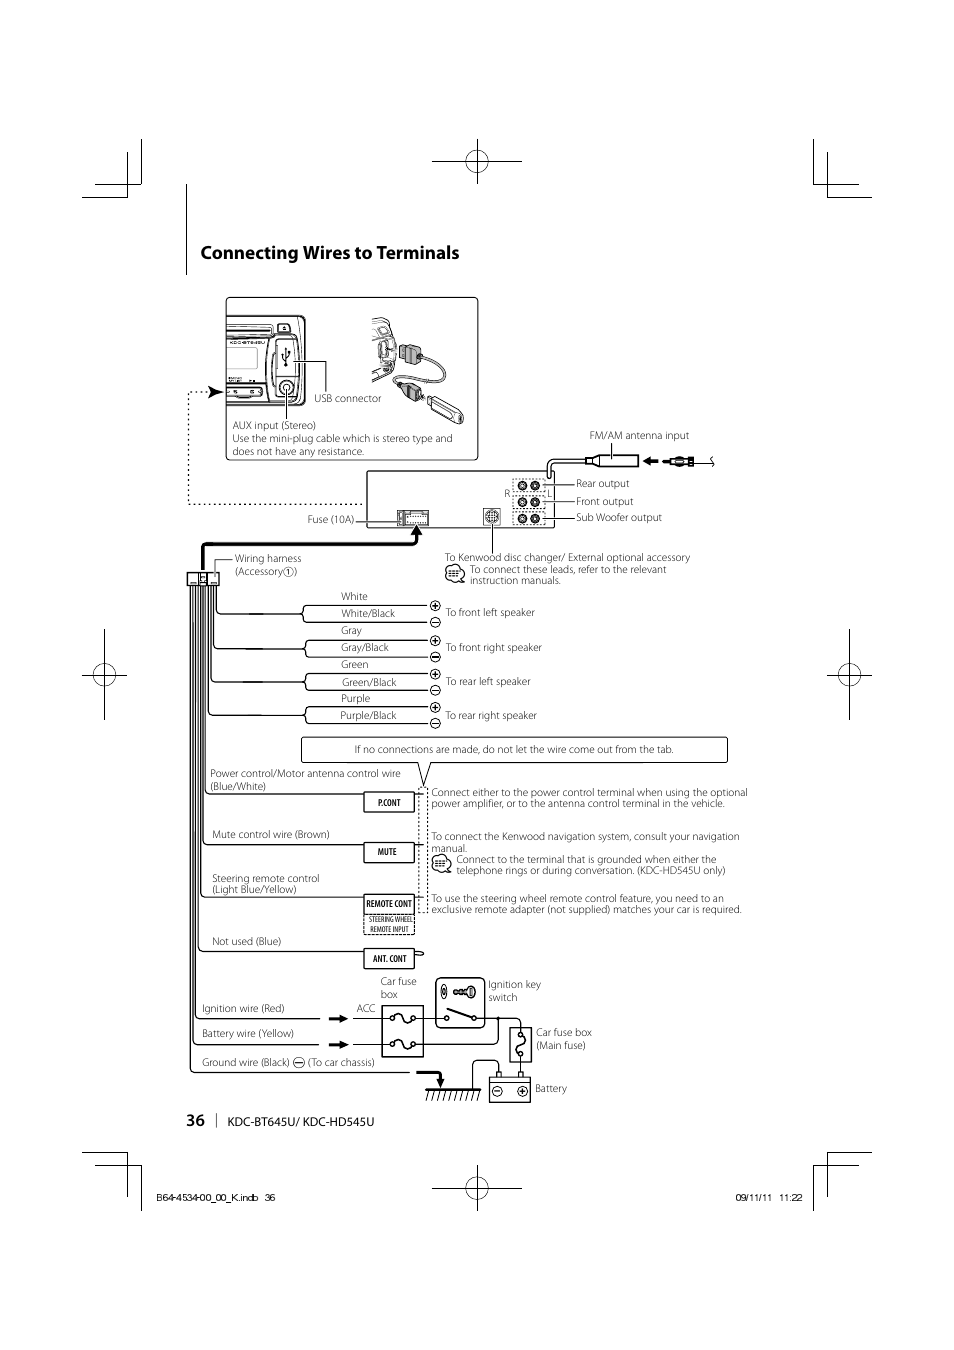 Kdc 148 Wiring Harness Schematics Library Kenwood Diagram Connecting Wires To Terminals Hd545u User Manual Rh Manualsdir Com 152